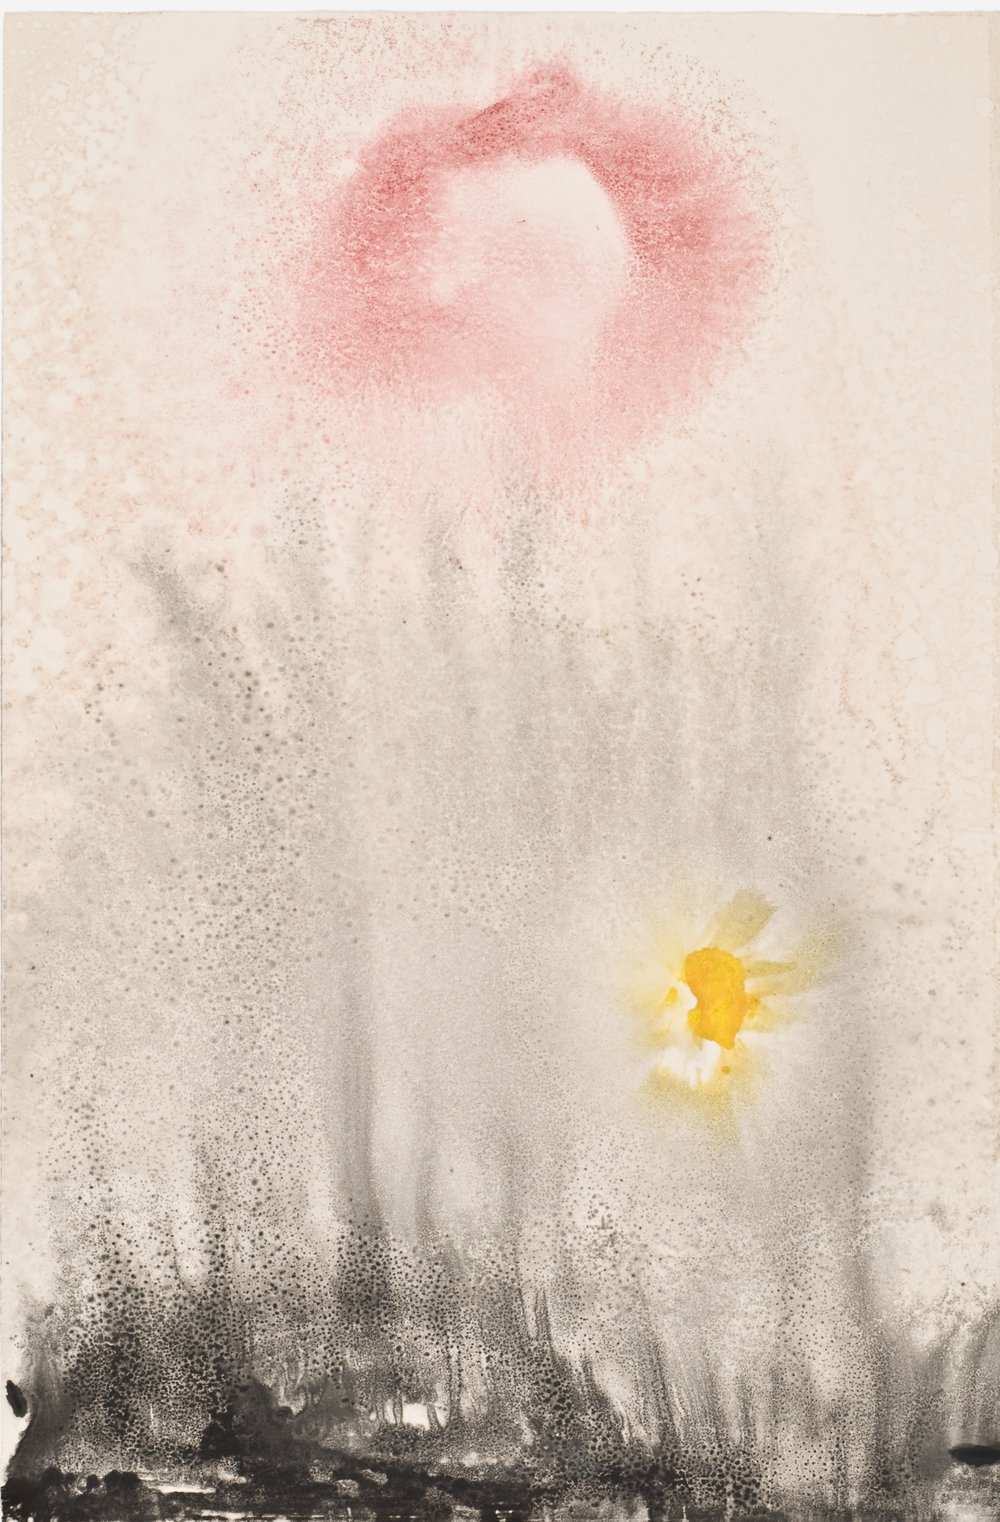 Untitled 35, 2012  oil on paper monoprint  18 x 12 inches  Wildwood Press